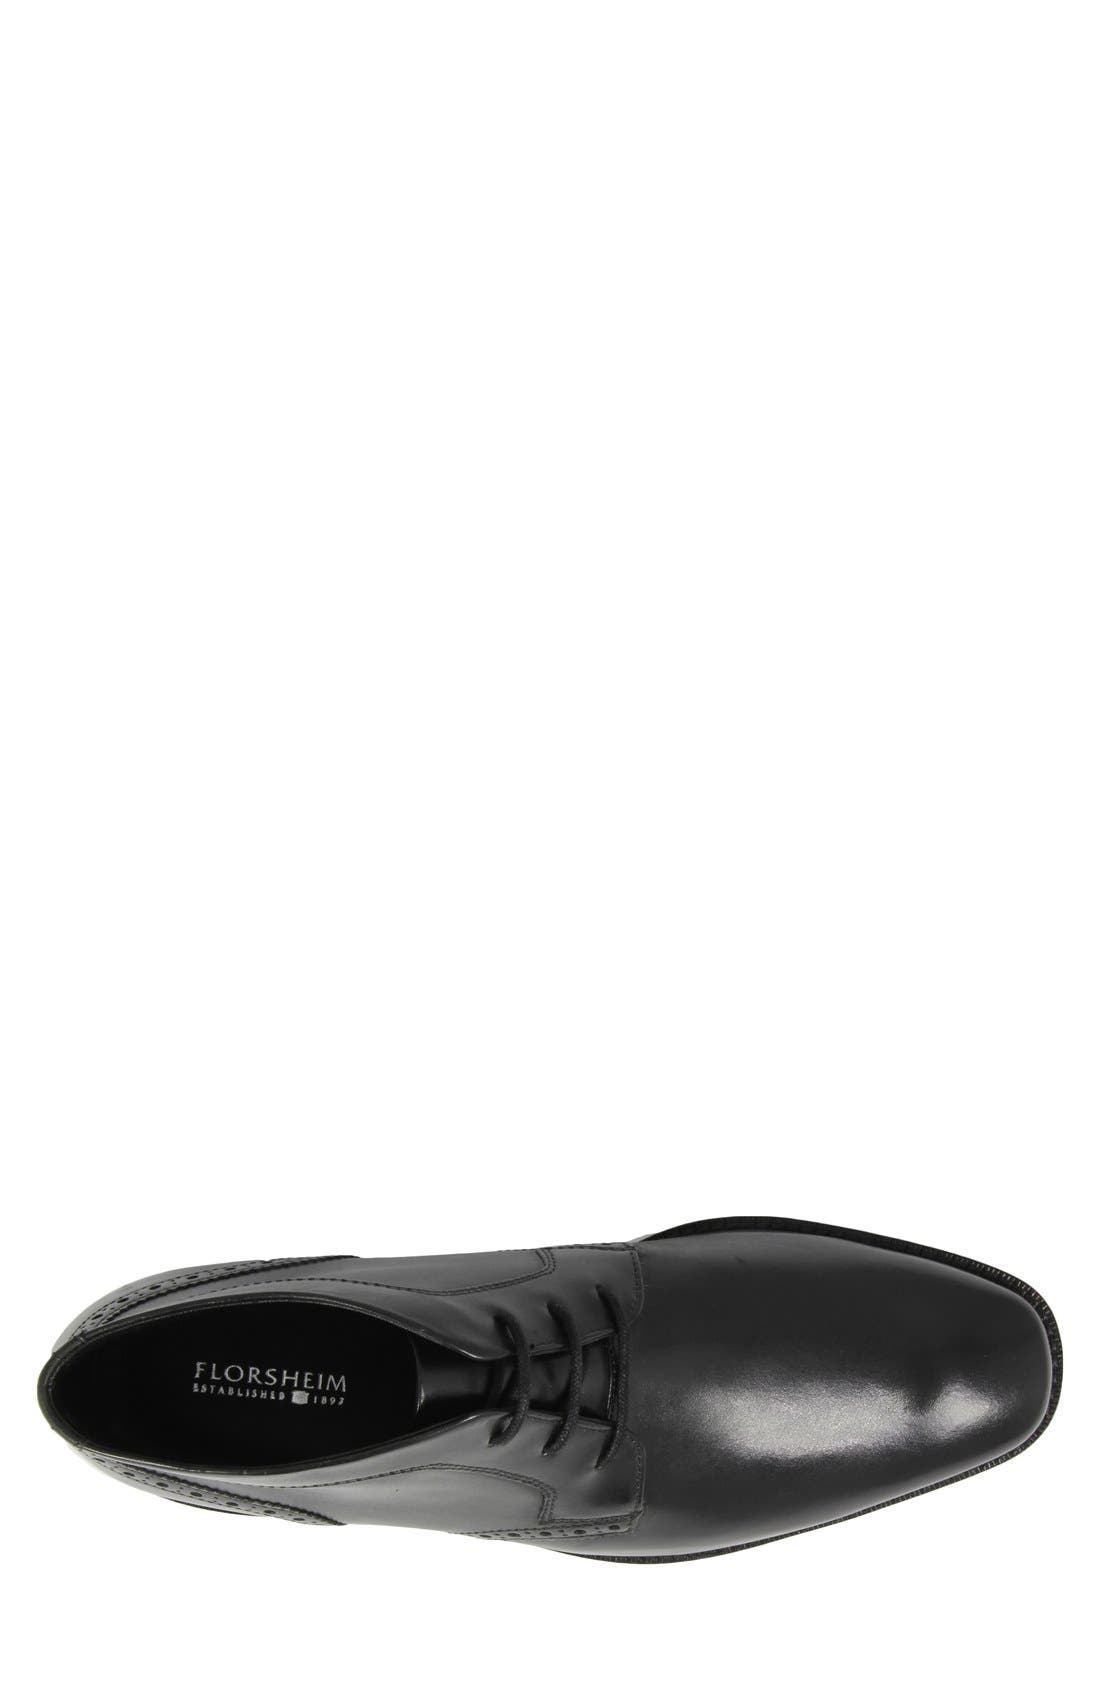 Alternate Image 3  - Florsheim 'Castellano' Chukka Boot (Men)